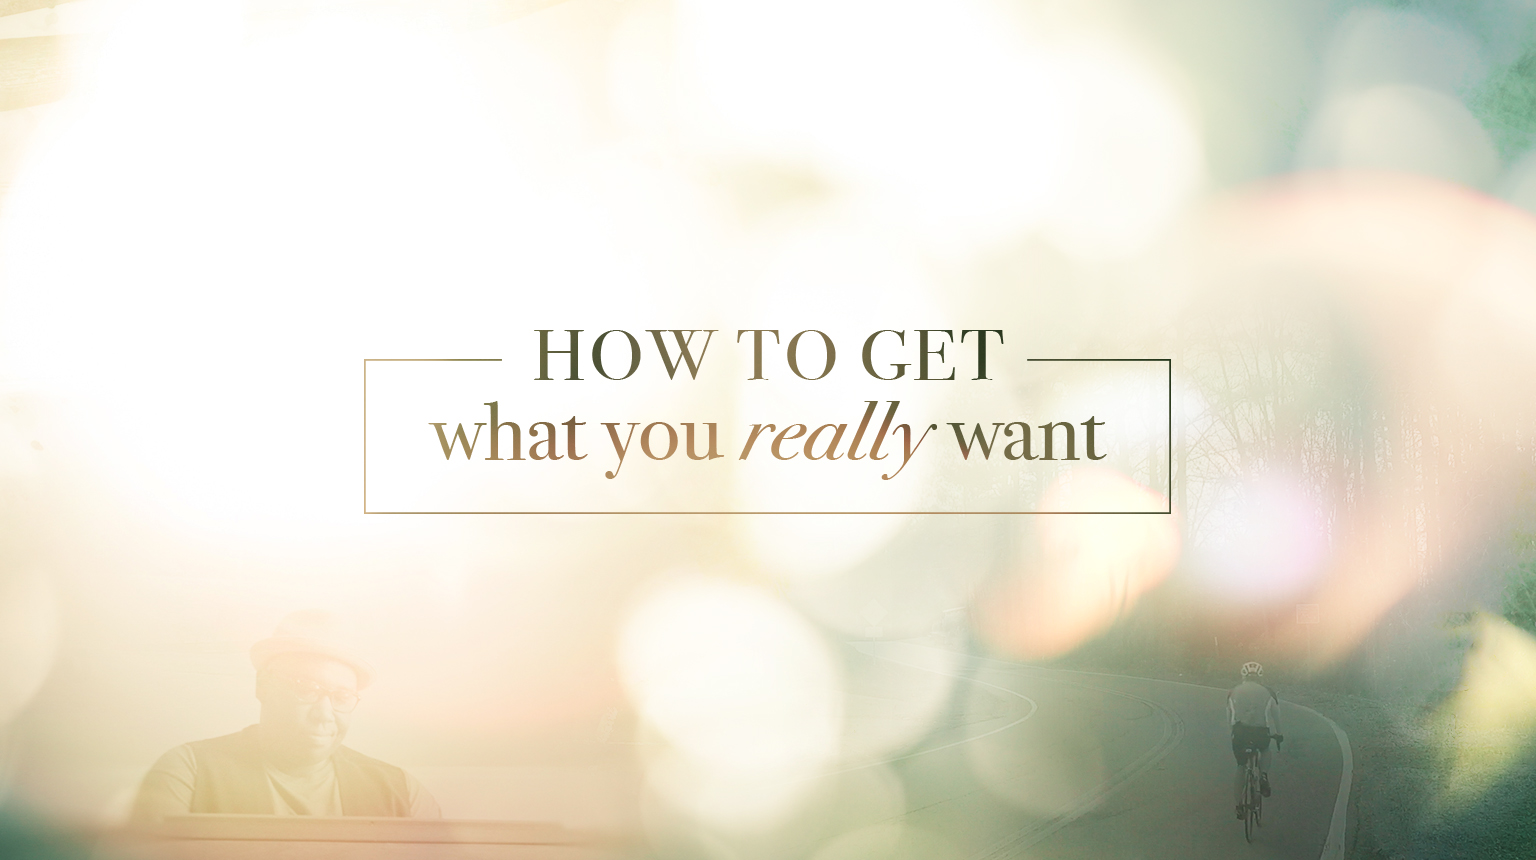 How To Get What You Really Want